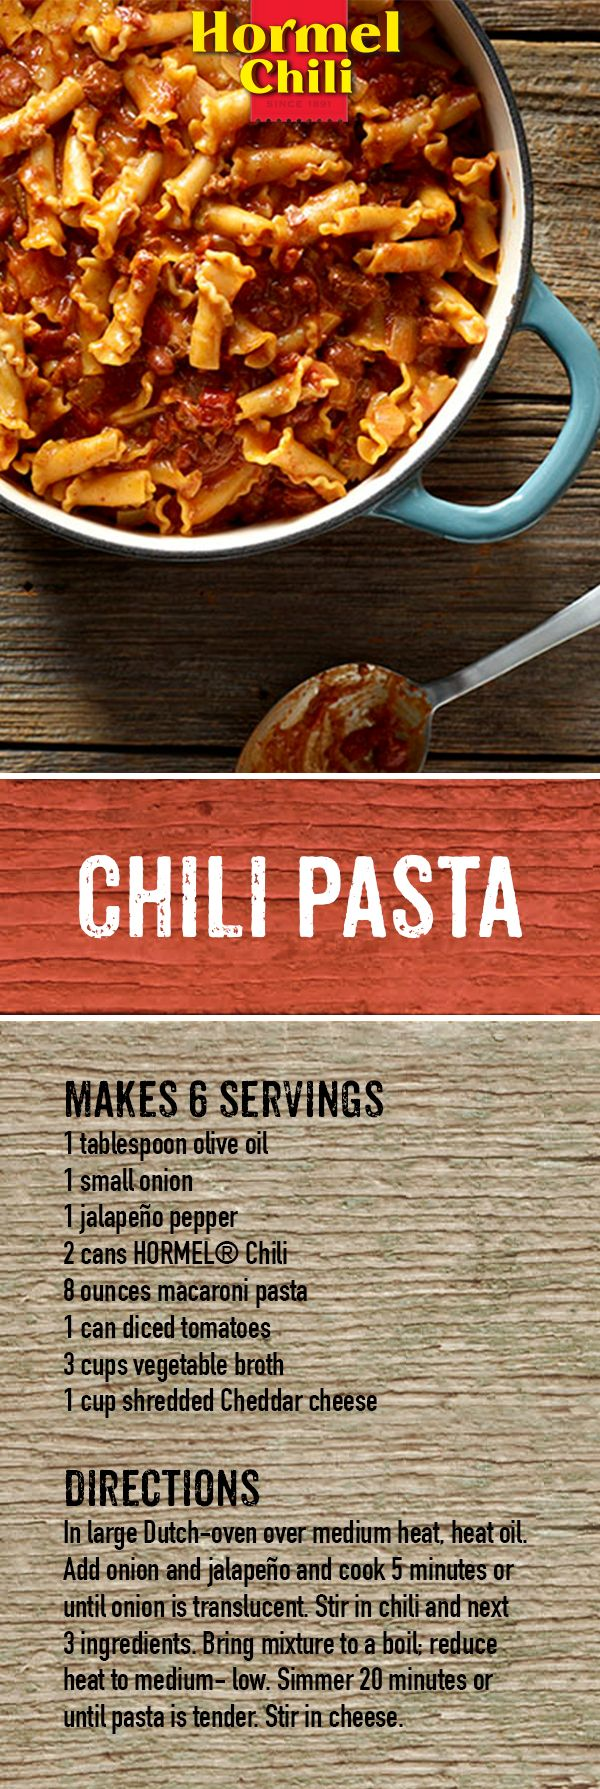 For a game-changing game day food, try One Pot Chili and Cheese Pasta. It'll melt the competition and the cheese. Bring it to your next tailgate.  | HORMEL® Chili Recipe | Chili Nation | One Pot Meals | Quick and Easy Recipes | One Pot Chili and Cheese Pasta | Dinner | Lunch | Potluck | Easy for group recipe